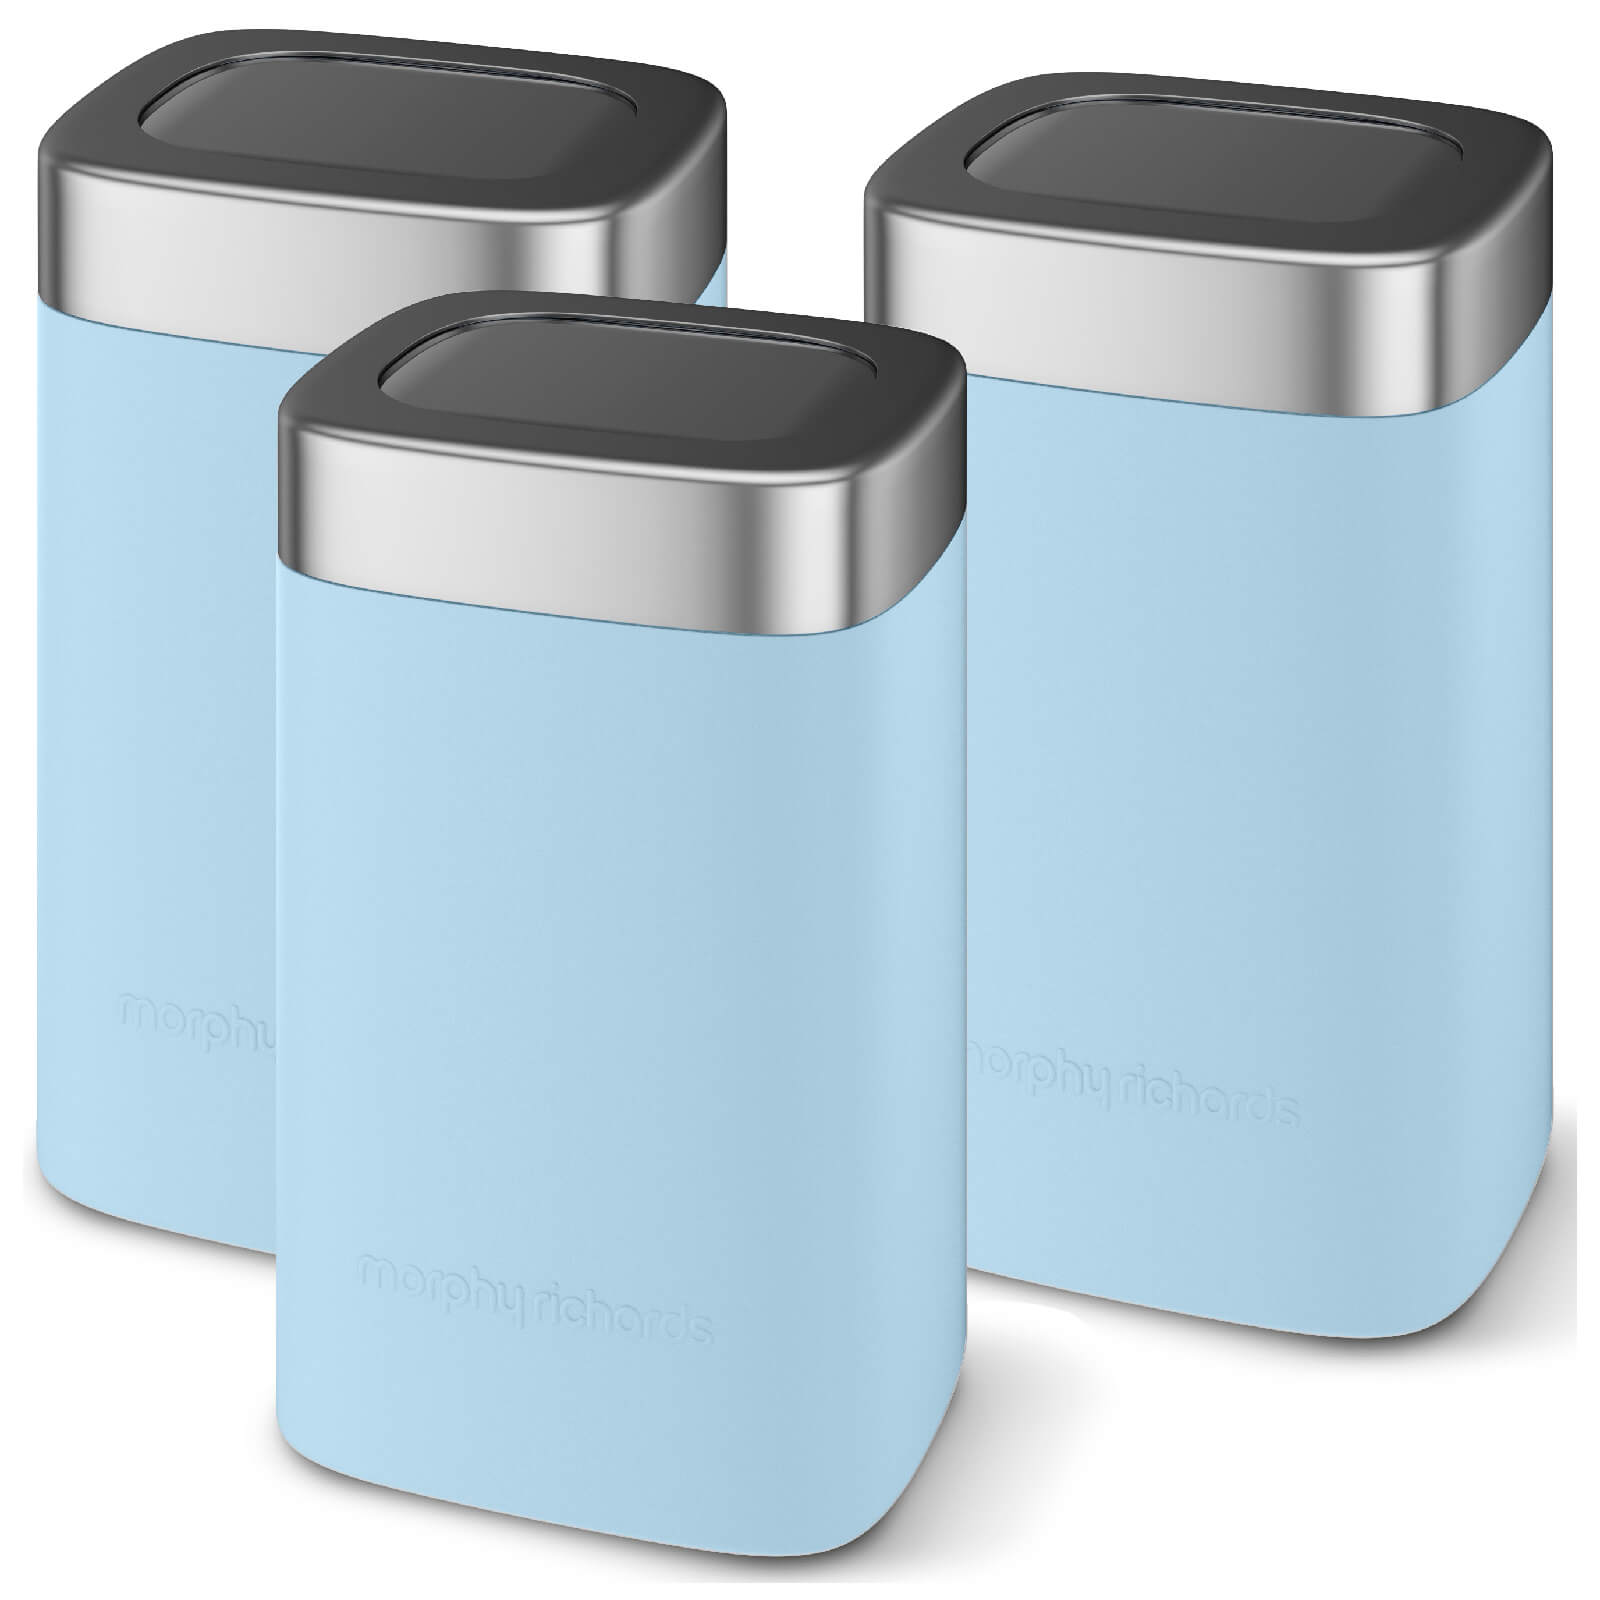 Morphy Richards 974072 Accents Set Of 3 Canisters - Blue